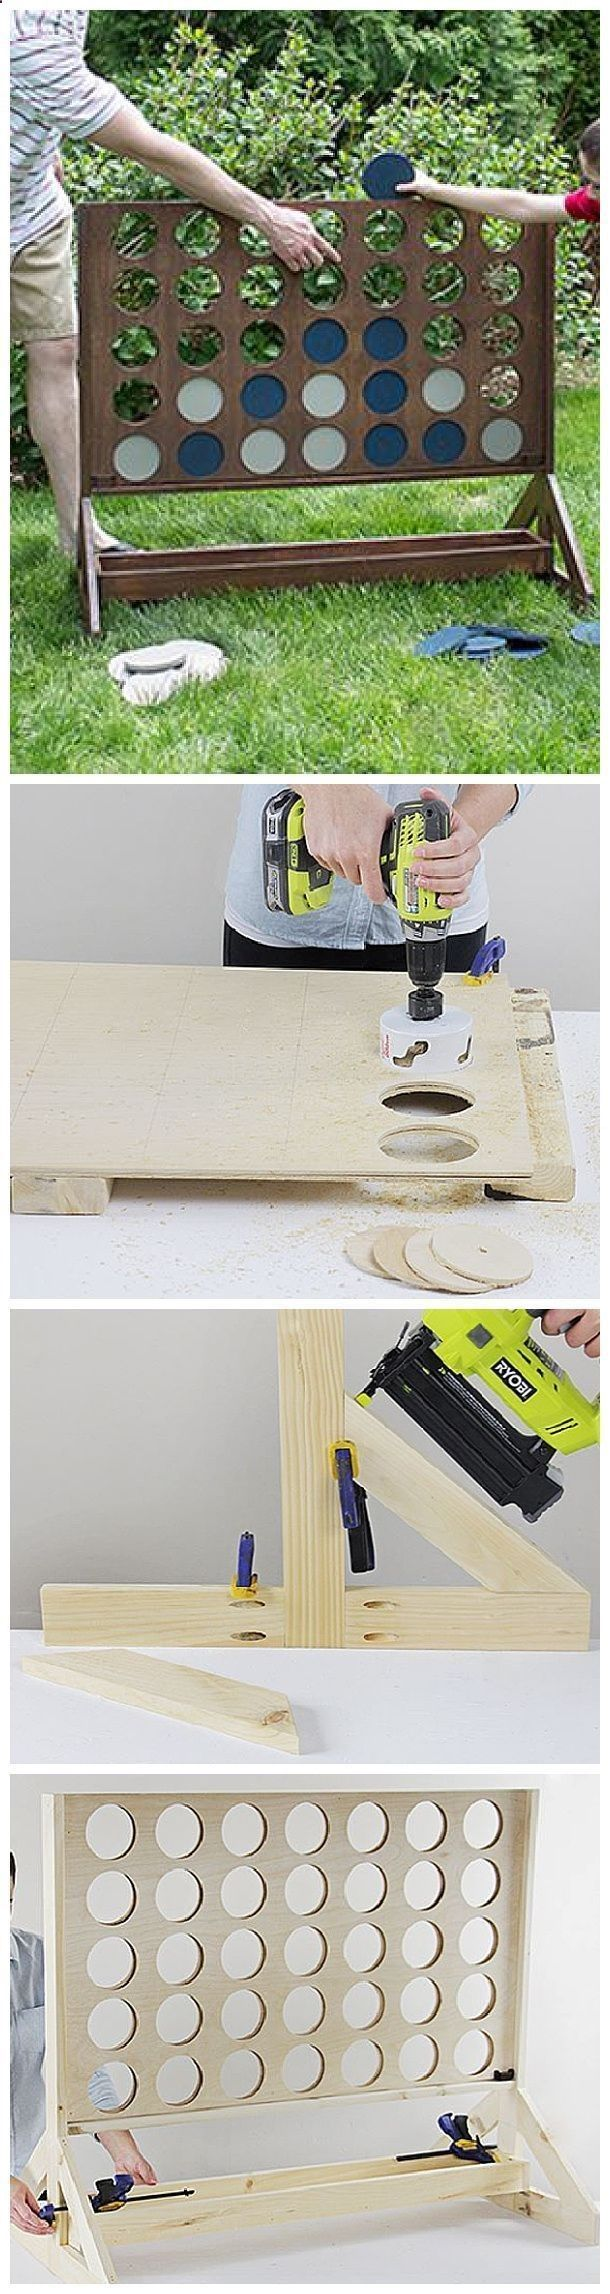 Teds wood working diy projects outdoor games do it yourself teds wood working diy projects outdoor games do it yourself connect four or solutioingenieria Choice Image